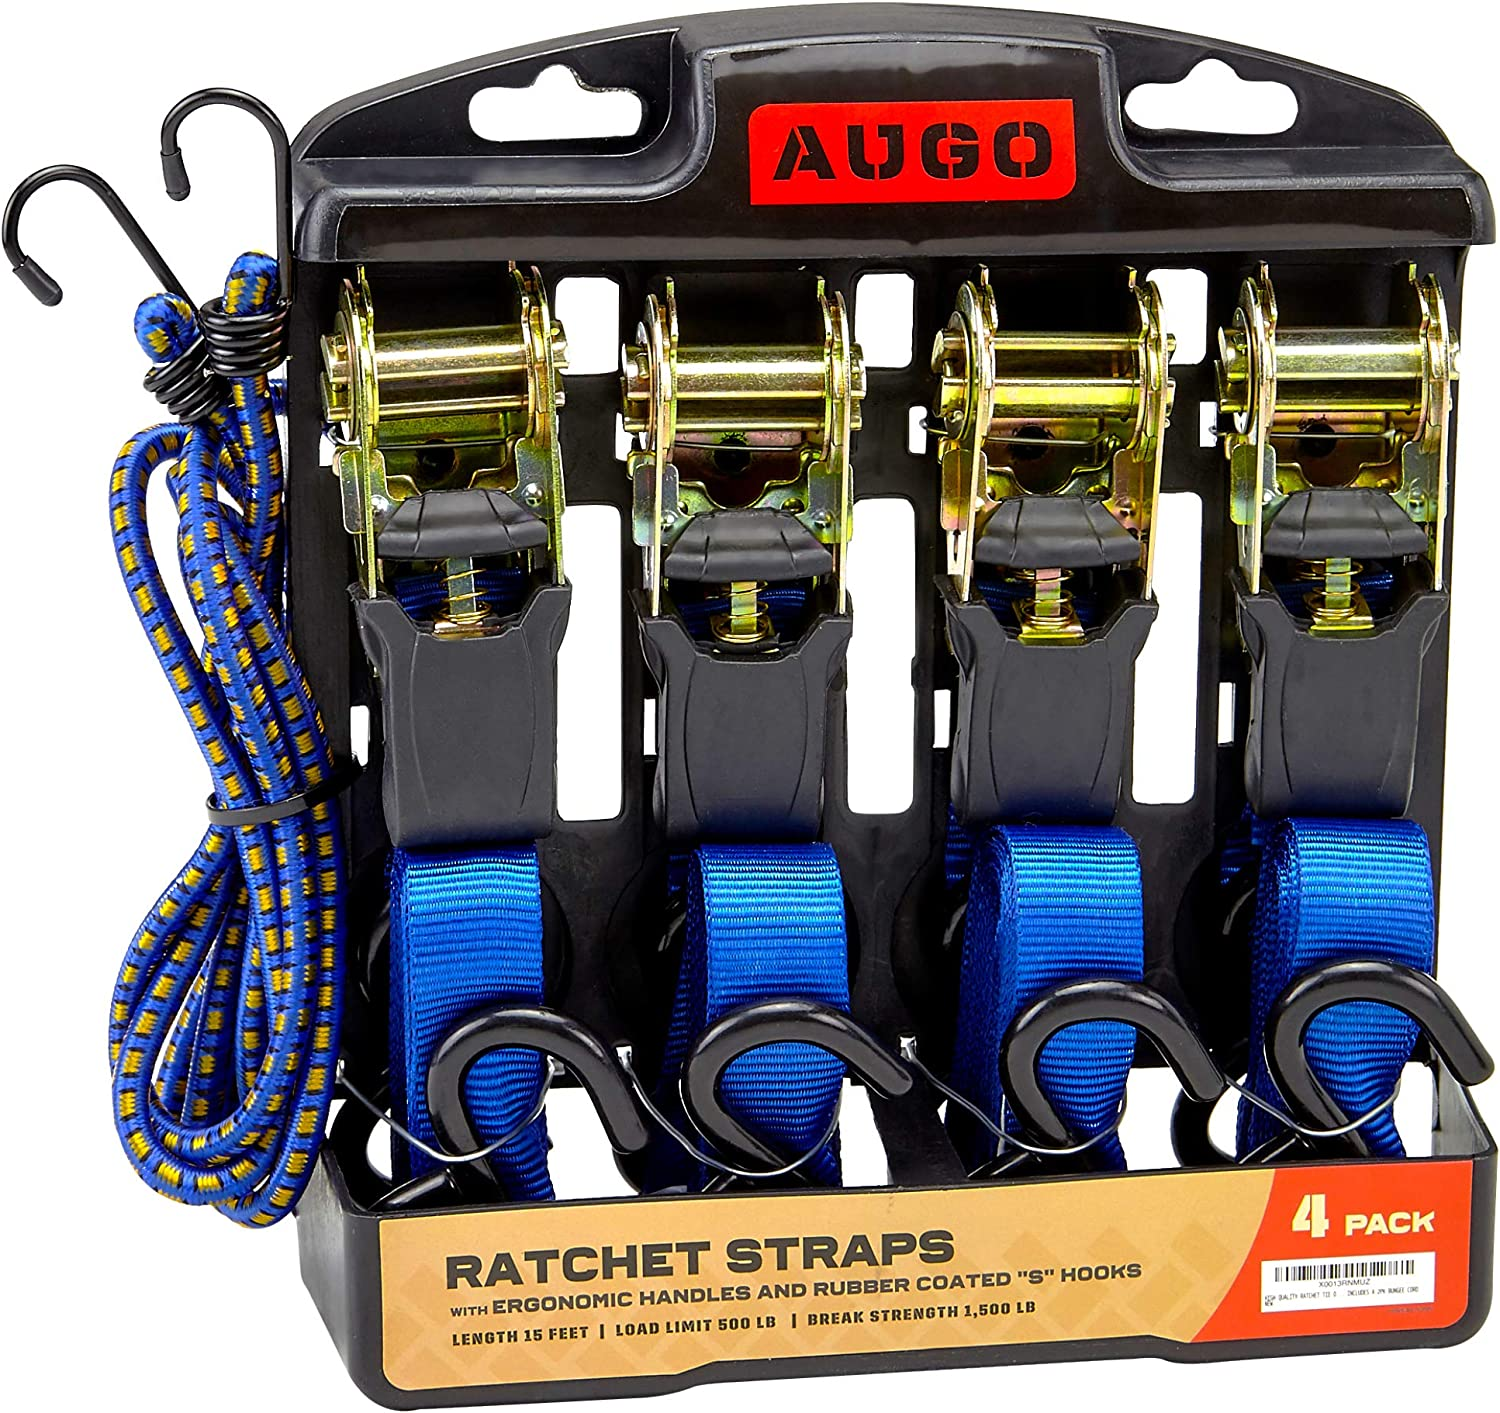 4PK Ratchet Straps